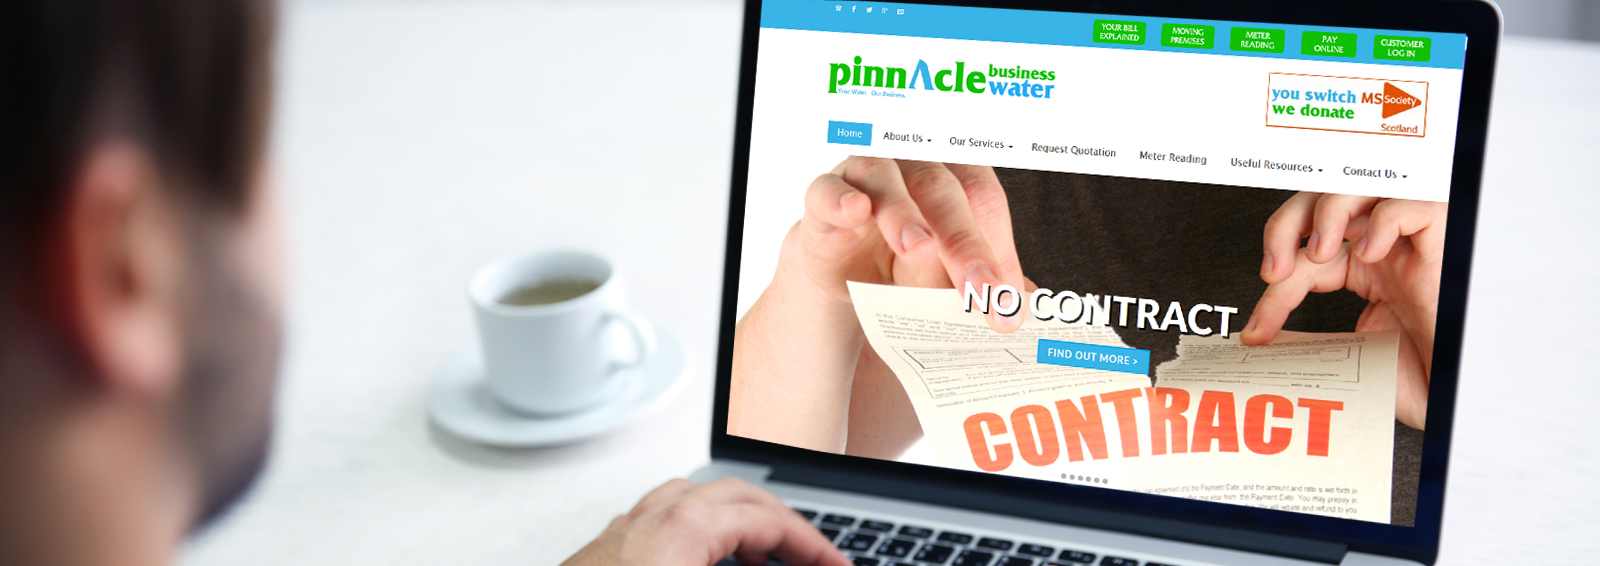 Pinnacle Water Business Glasgow How To Switch